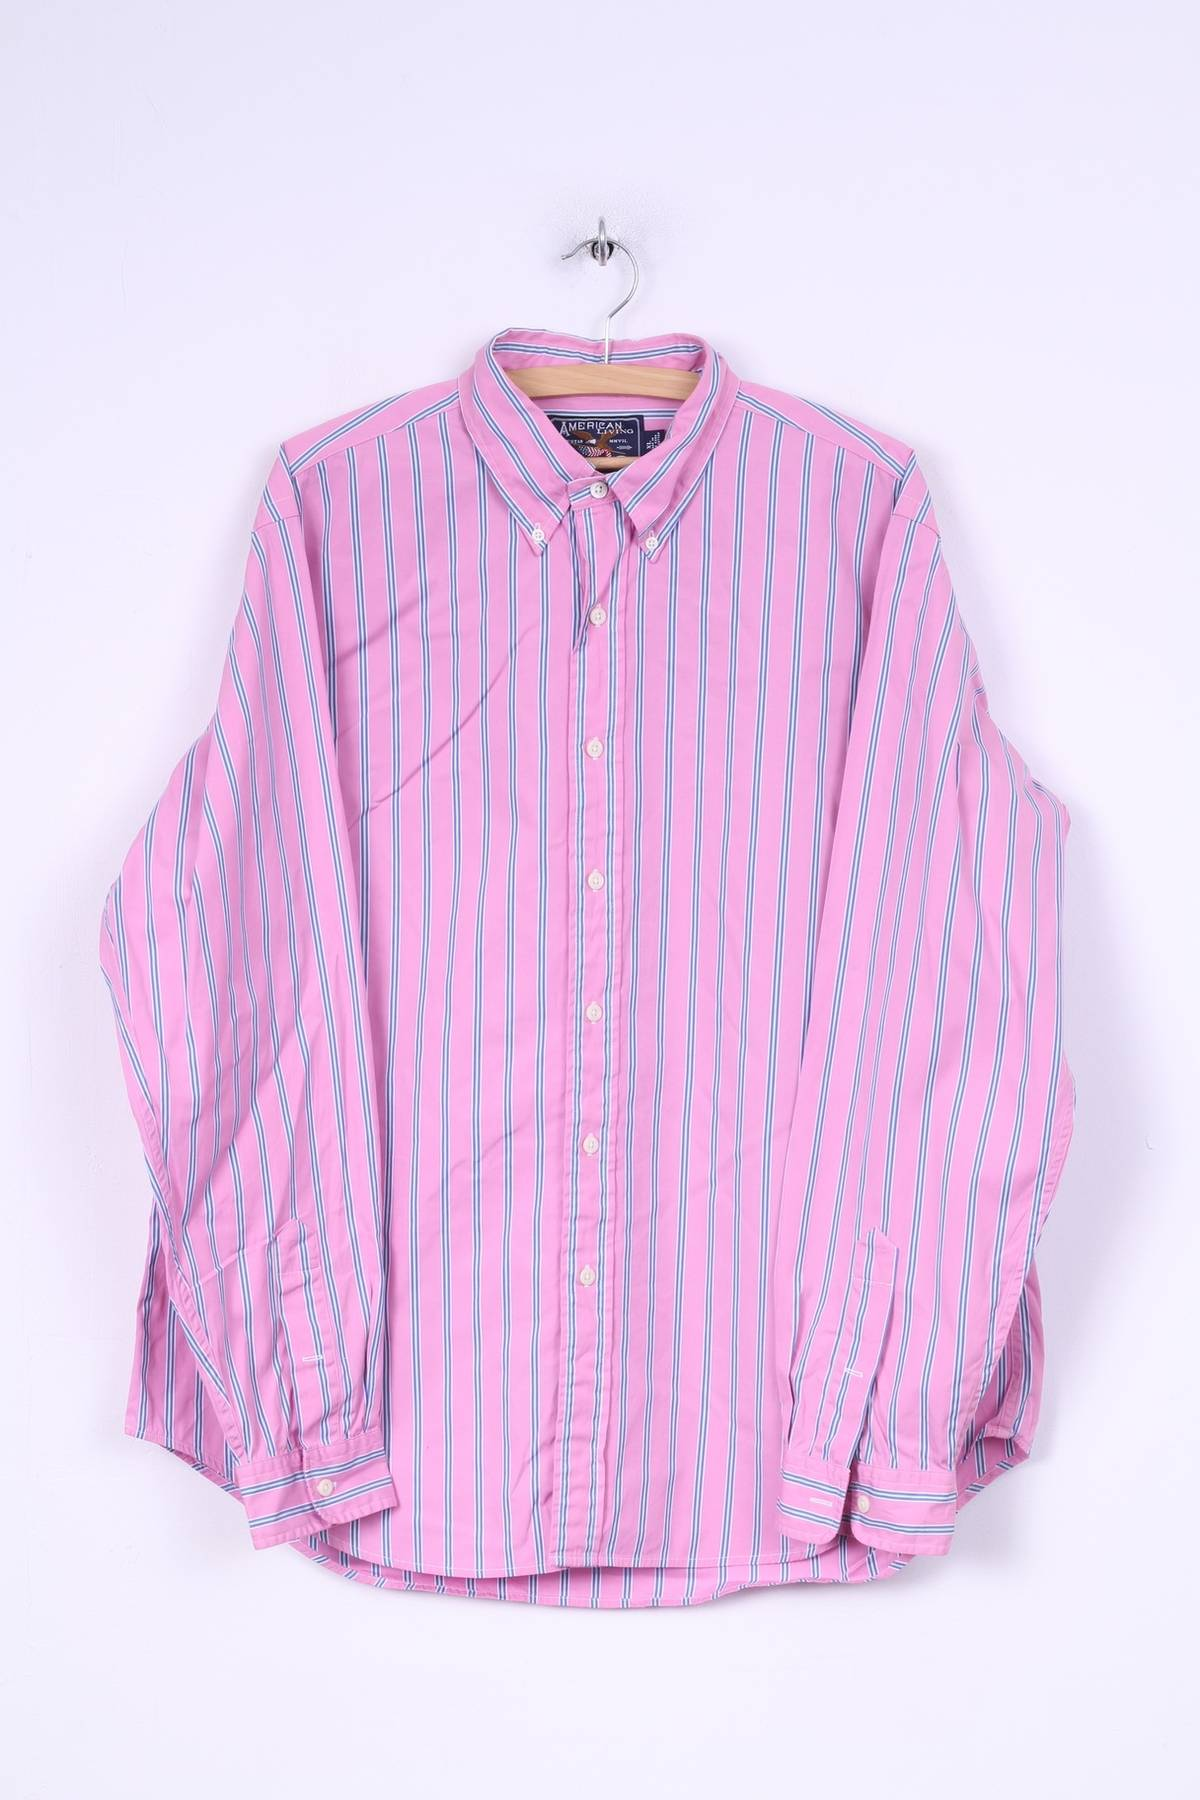 Unbranded American Living Mens Xl Casual Shirt Pink Striped Button